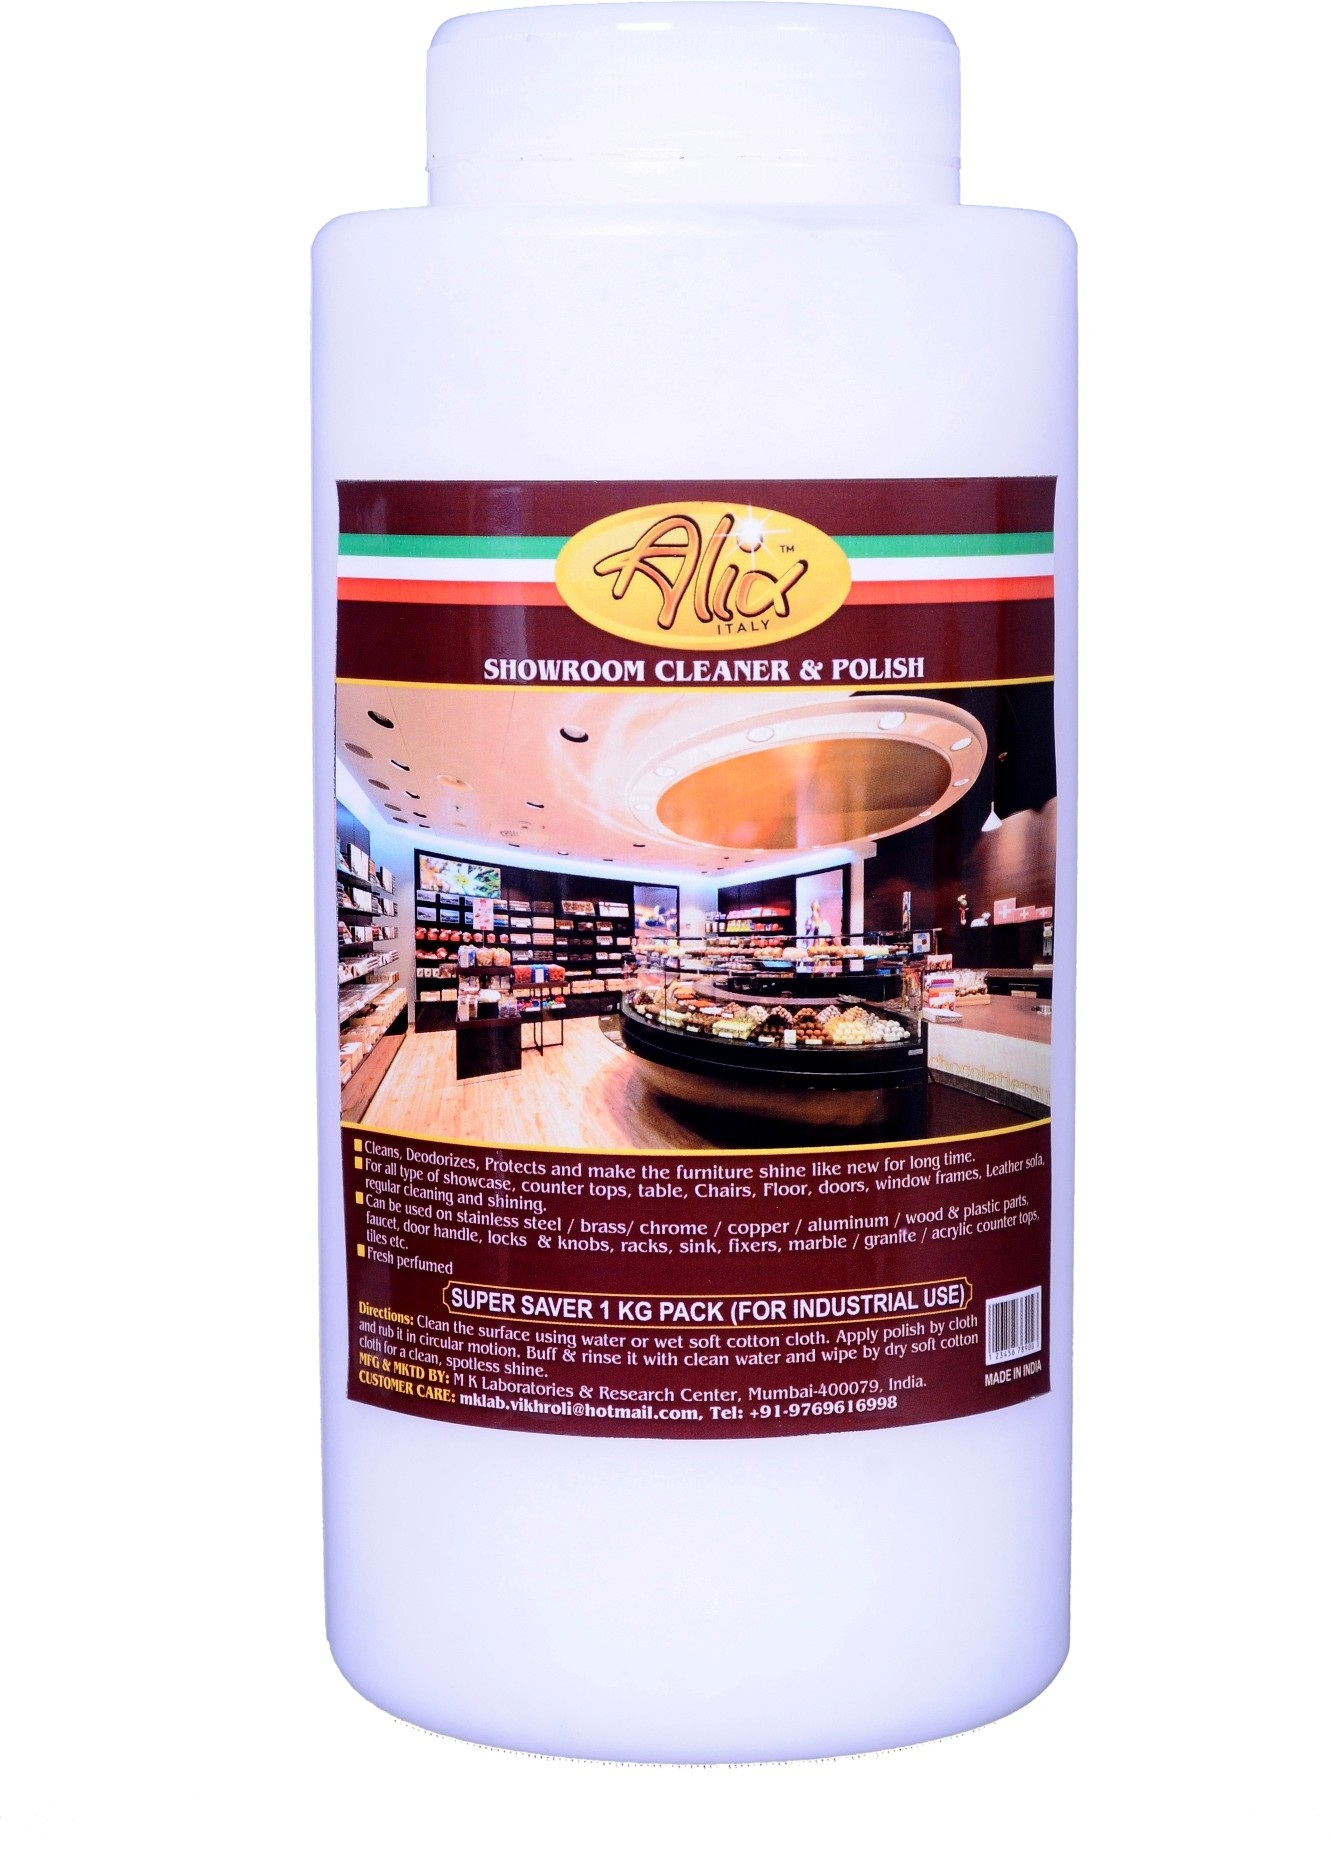 ALIX Showroom Cleaner & Polish Liquid Detergent